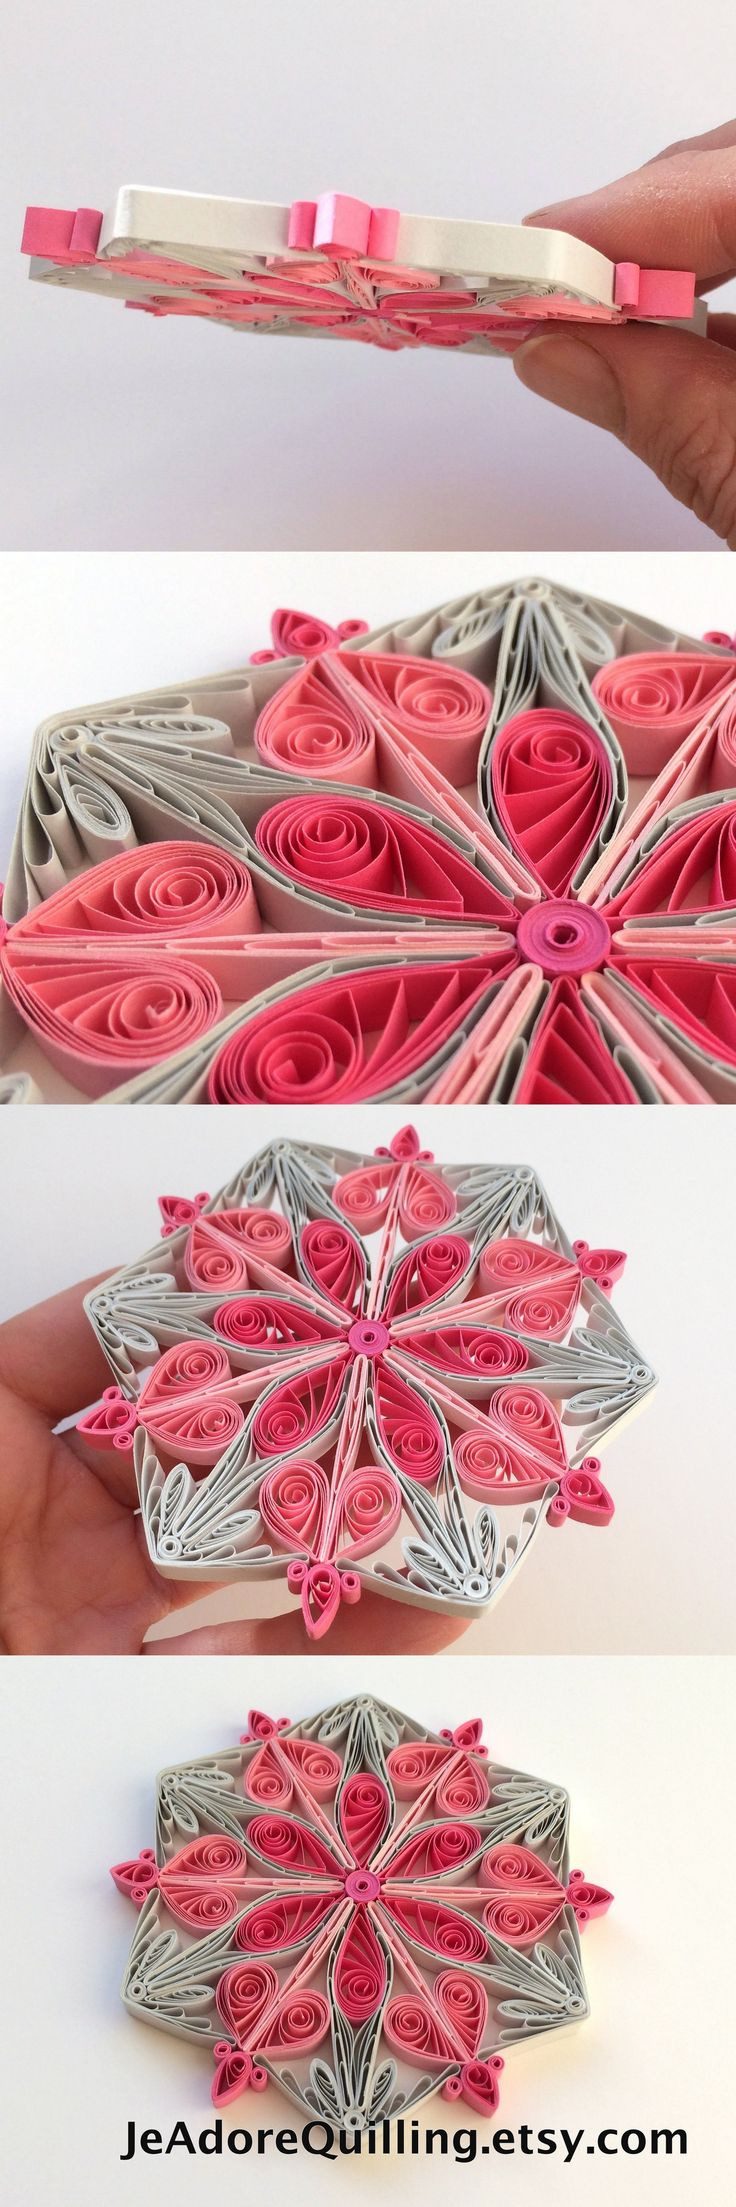 Snowflake Pink Gray Christmas Tree Decoration Winter Ornaments Gifts Toppers Fillers Office Corporate Paper Quilling Handmade Quilled Art